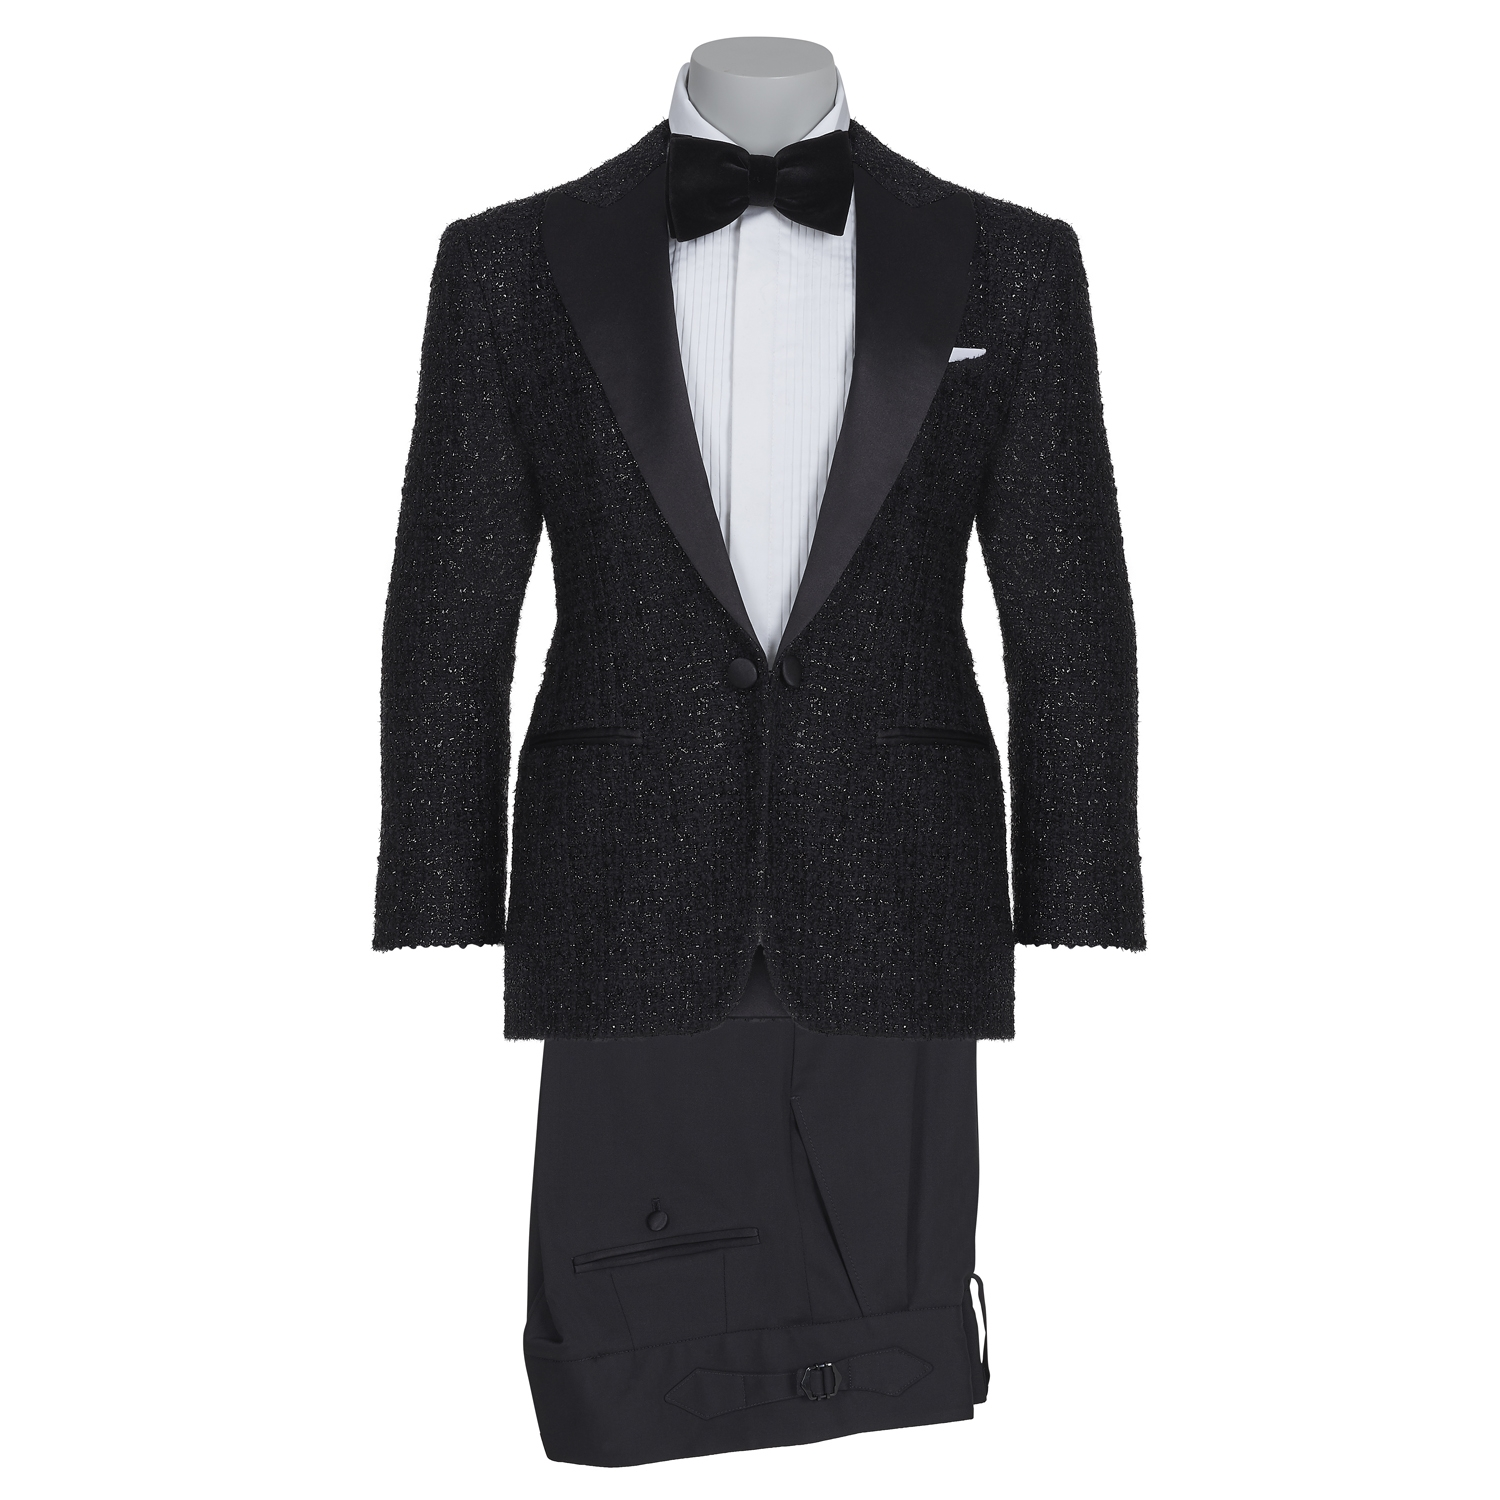 SSM KIDS / 001 - DIAMOND BLACK (SATIN PEAK LAPEL) TUXEDO SUIT